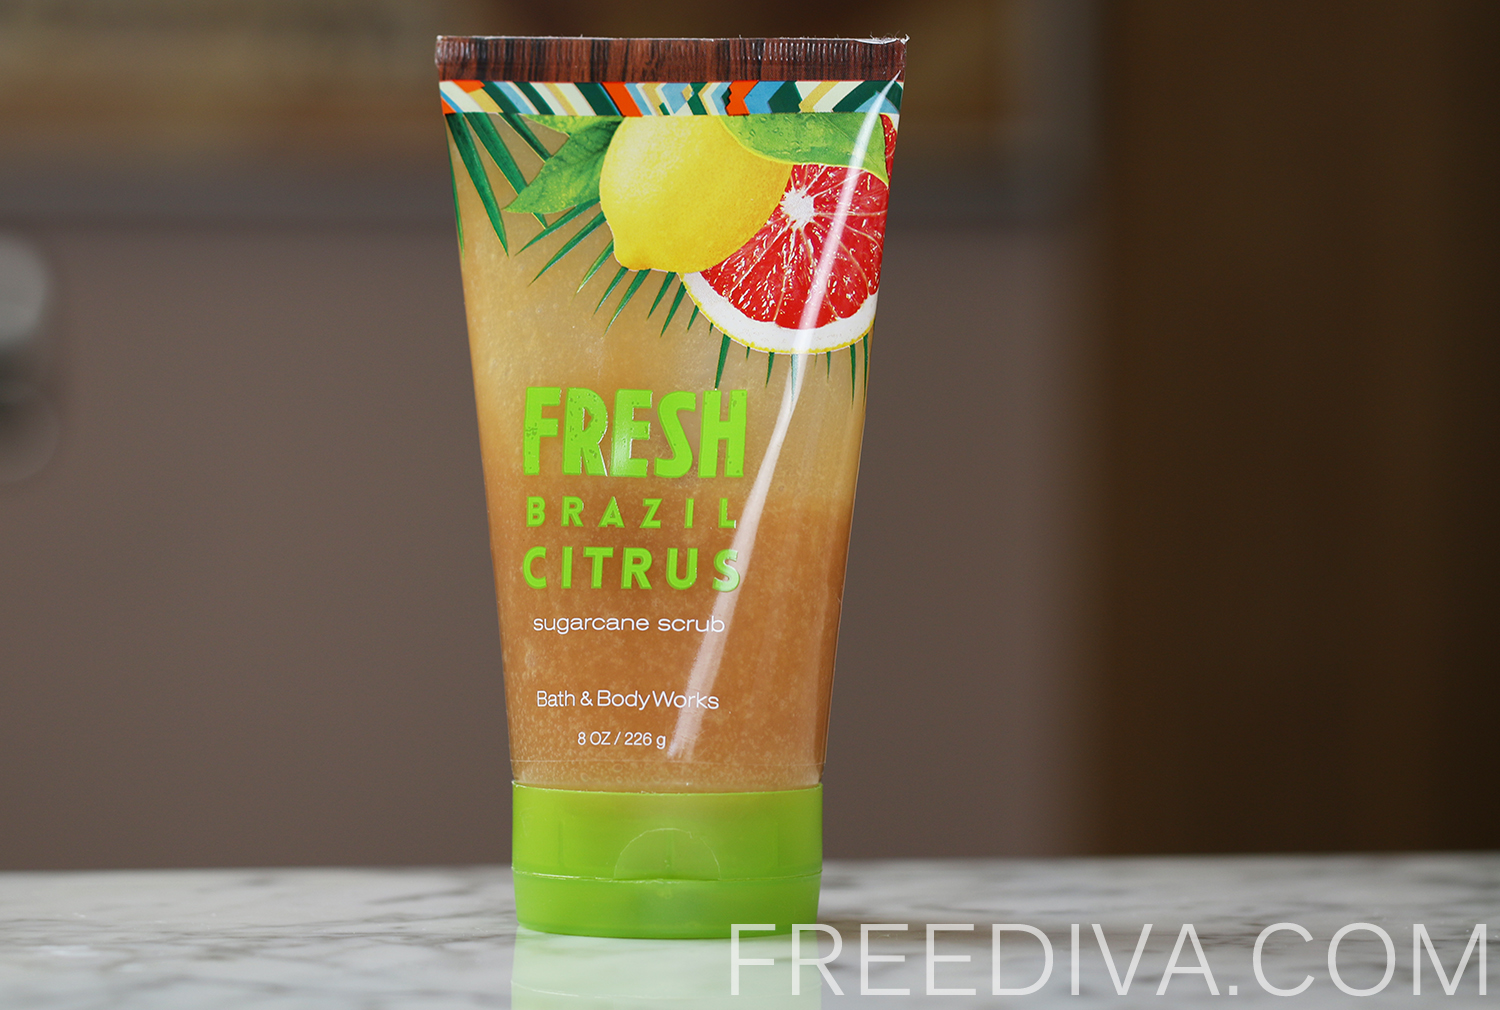 Fresh Brazil Citrus Sugarcane Scrub Bath & Body Works